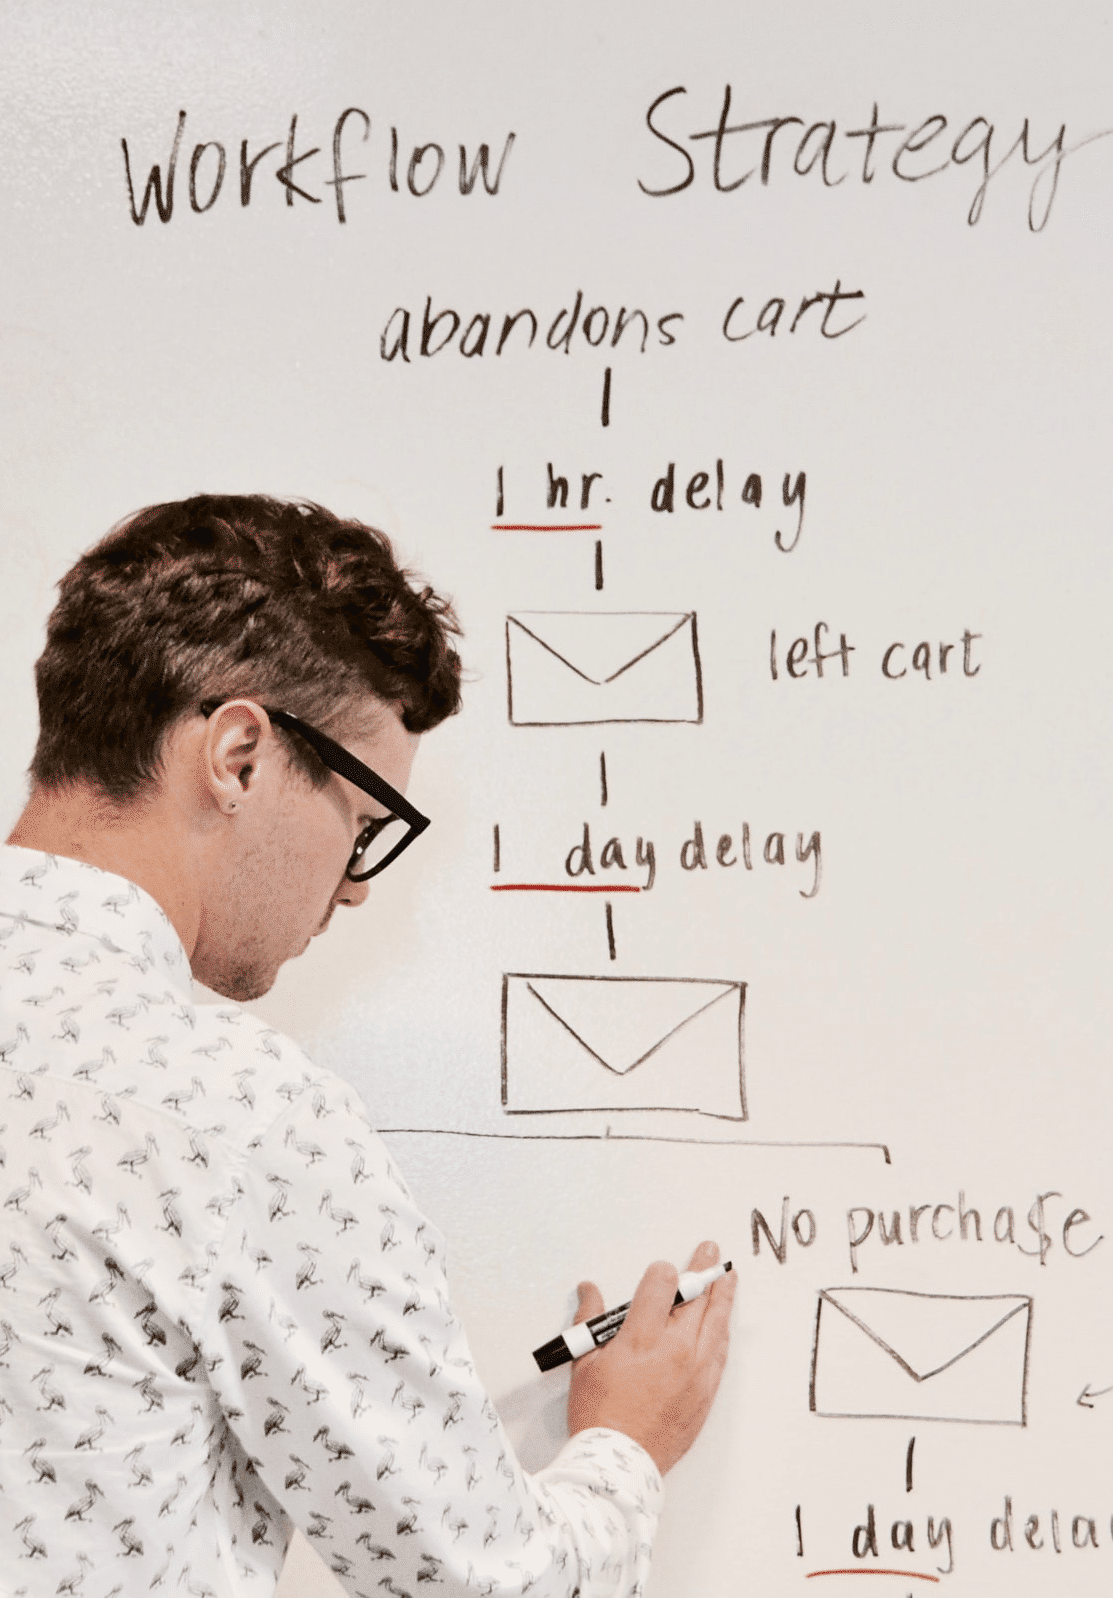 A man maps out an email strategy.